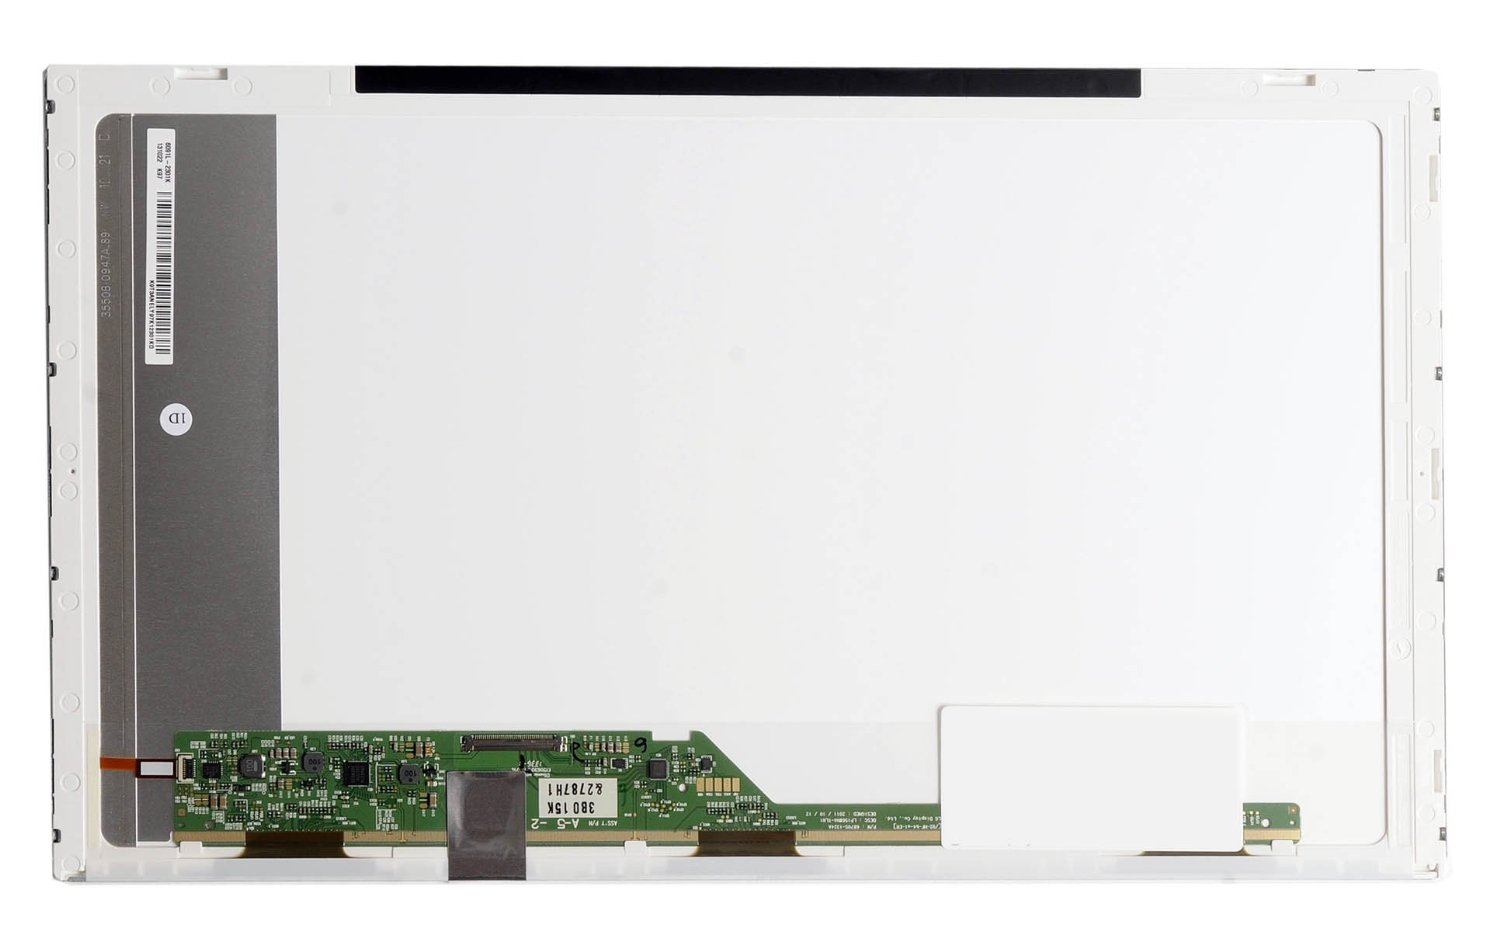 For HP ProBook 4510s 4515s 4520s 4525s 4520 New 15.6 WXGA HD LED LCD ScreenFor HP ProBook 4510s 4515s 4520s 4525s 4520 New 15.6 WXGA HD LED LCD Screen